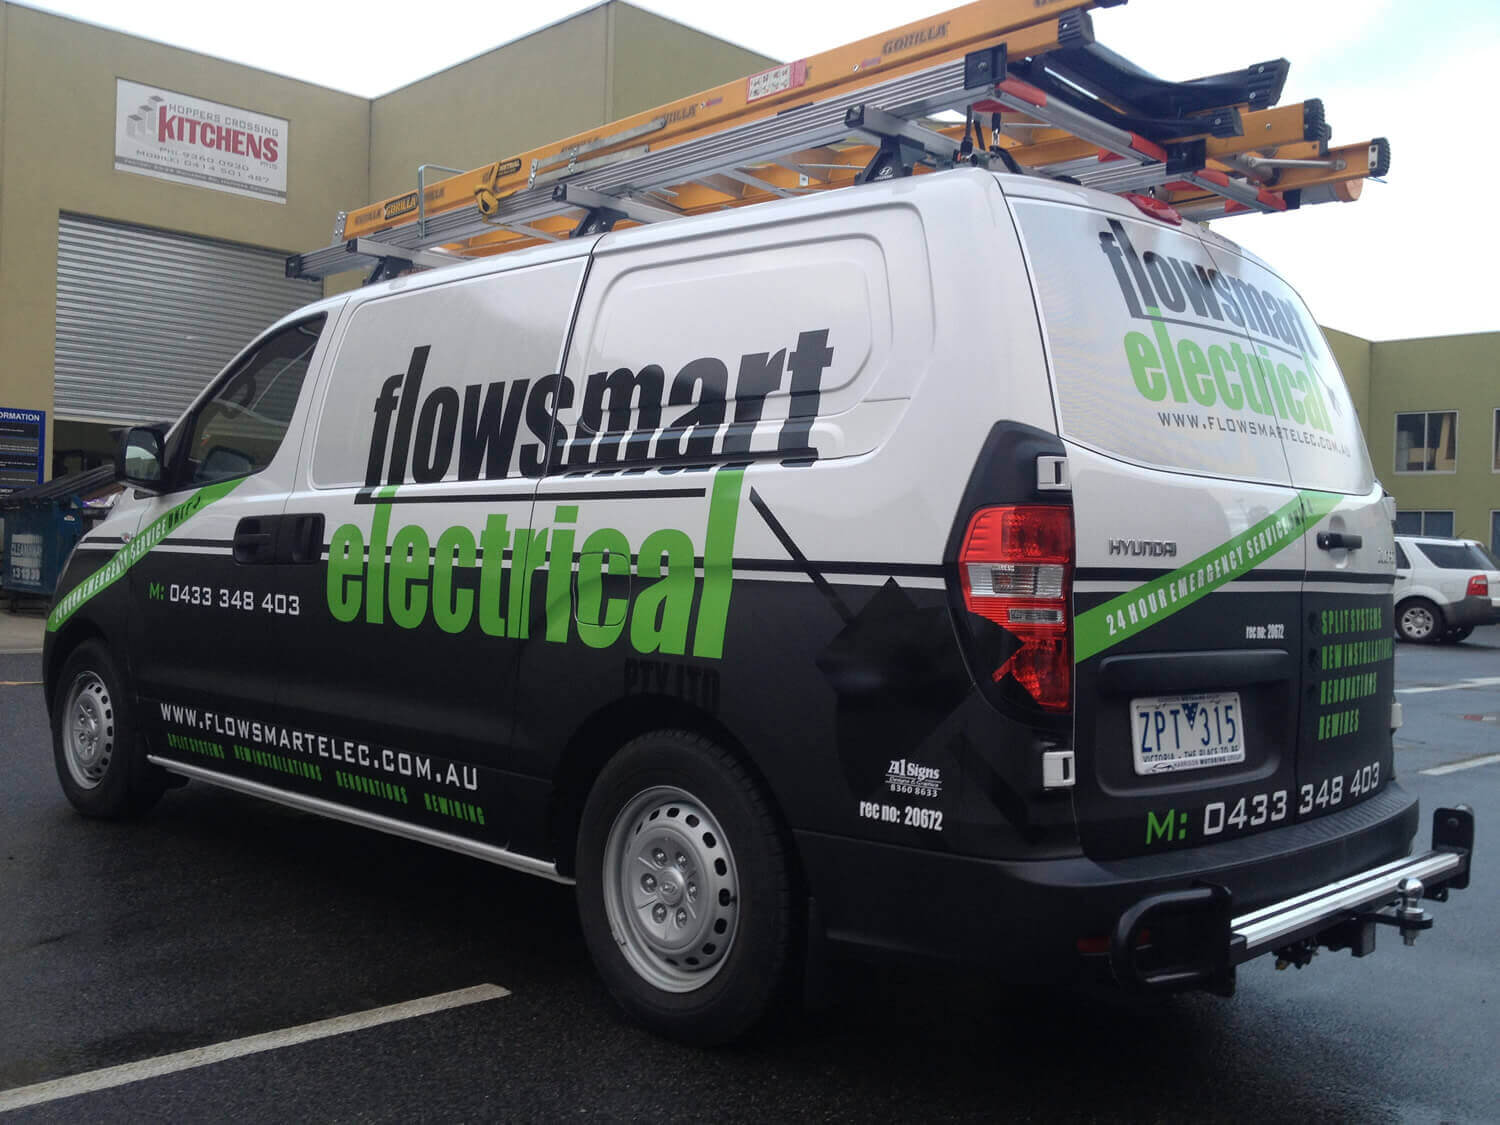 Vehicle and Boat wraps